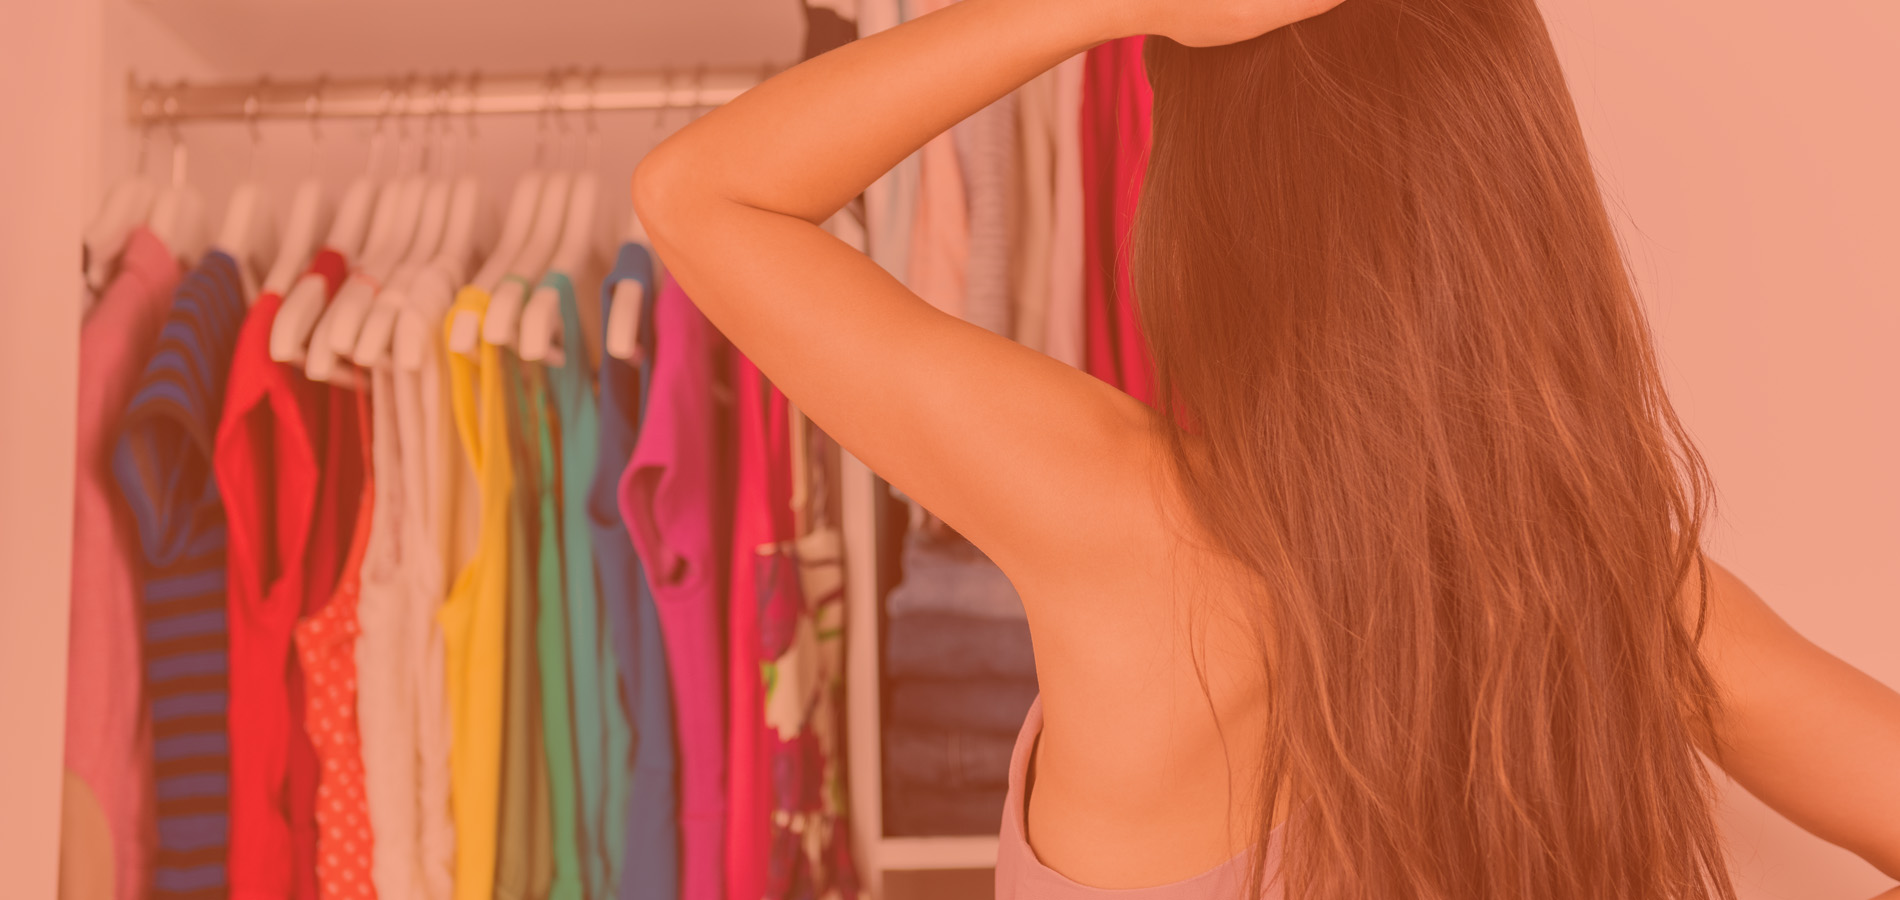 3 Clues from Your Closet That You Need to Work on Your Self-Worth